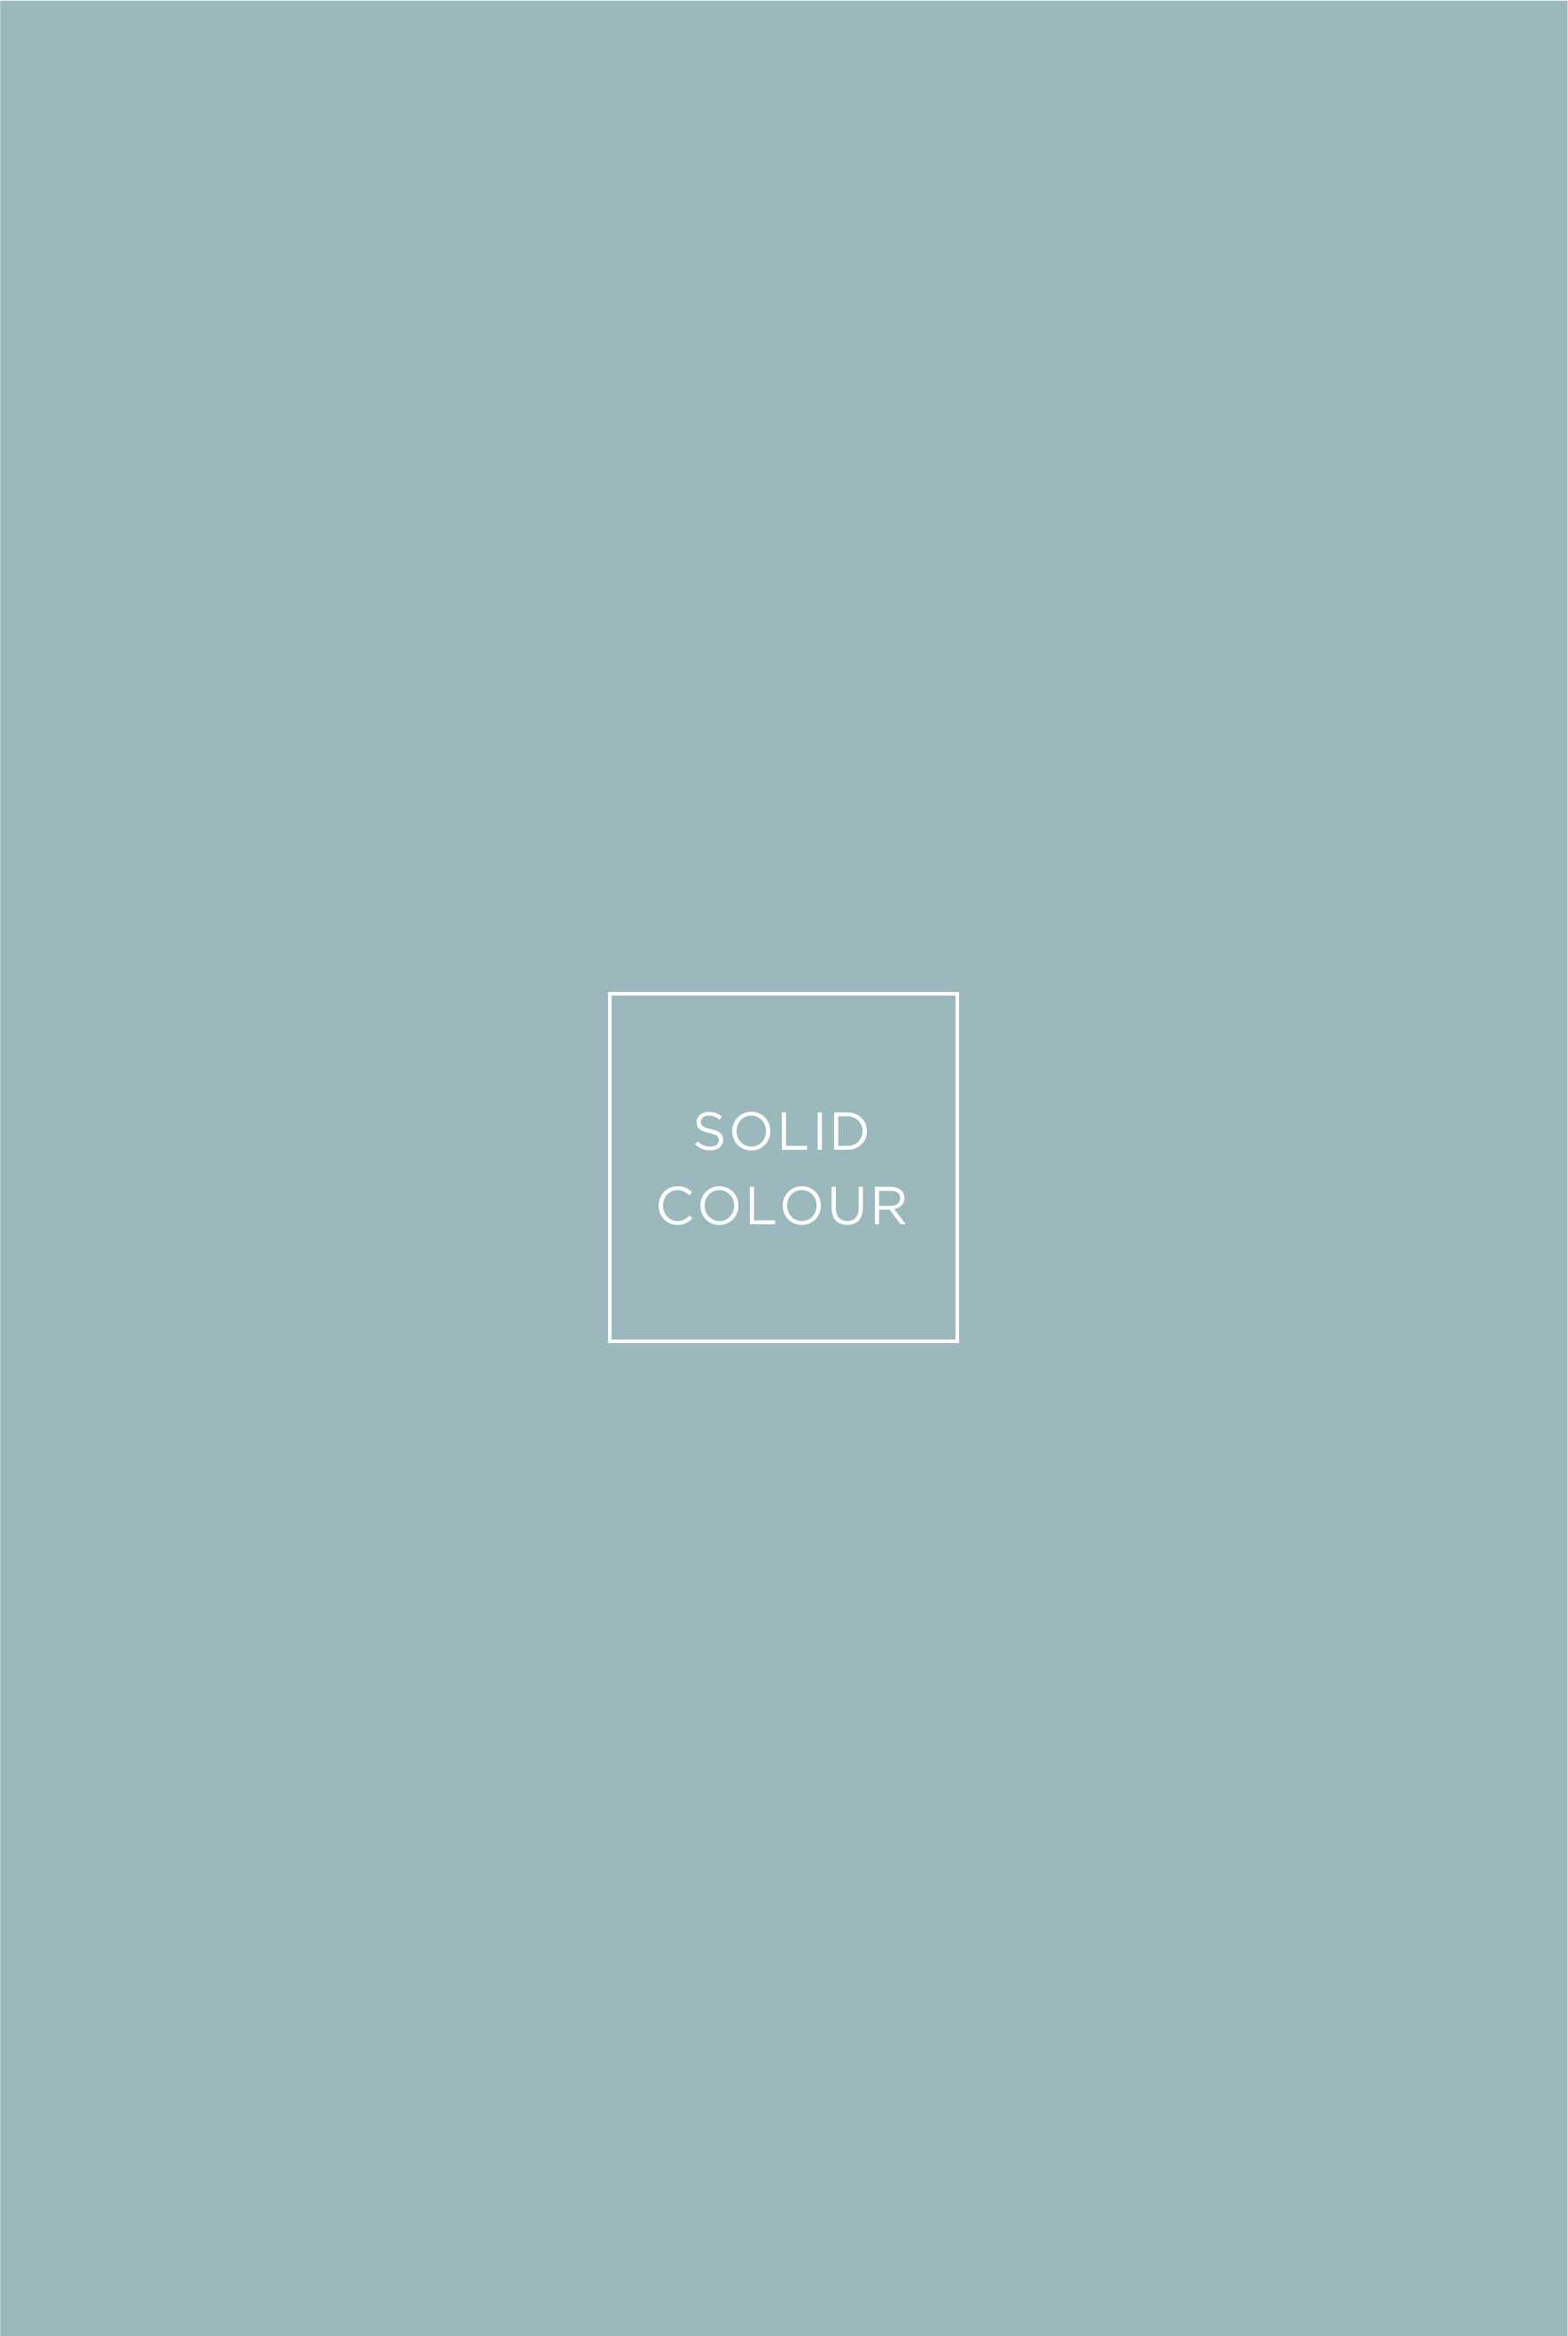 Solid Colour Light And Pastel Teal Colour Amazing For Product Photography Flowers Stationery Pap Teal Background Backdrops Backgrounds Beautiful Backdrops